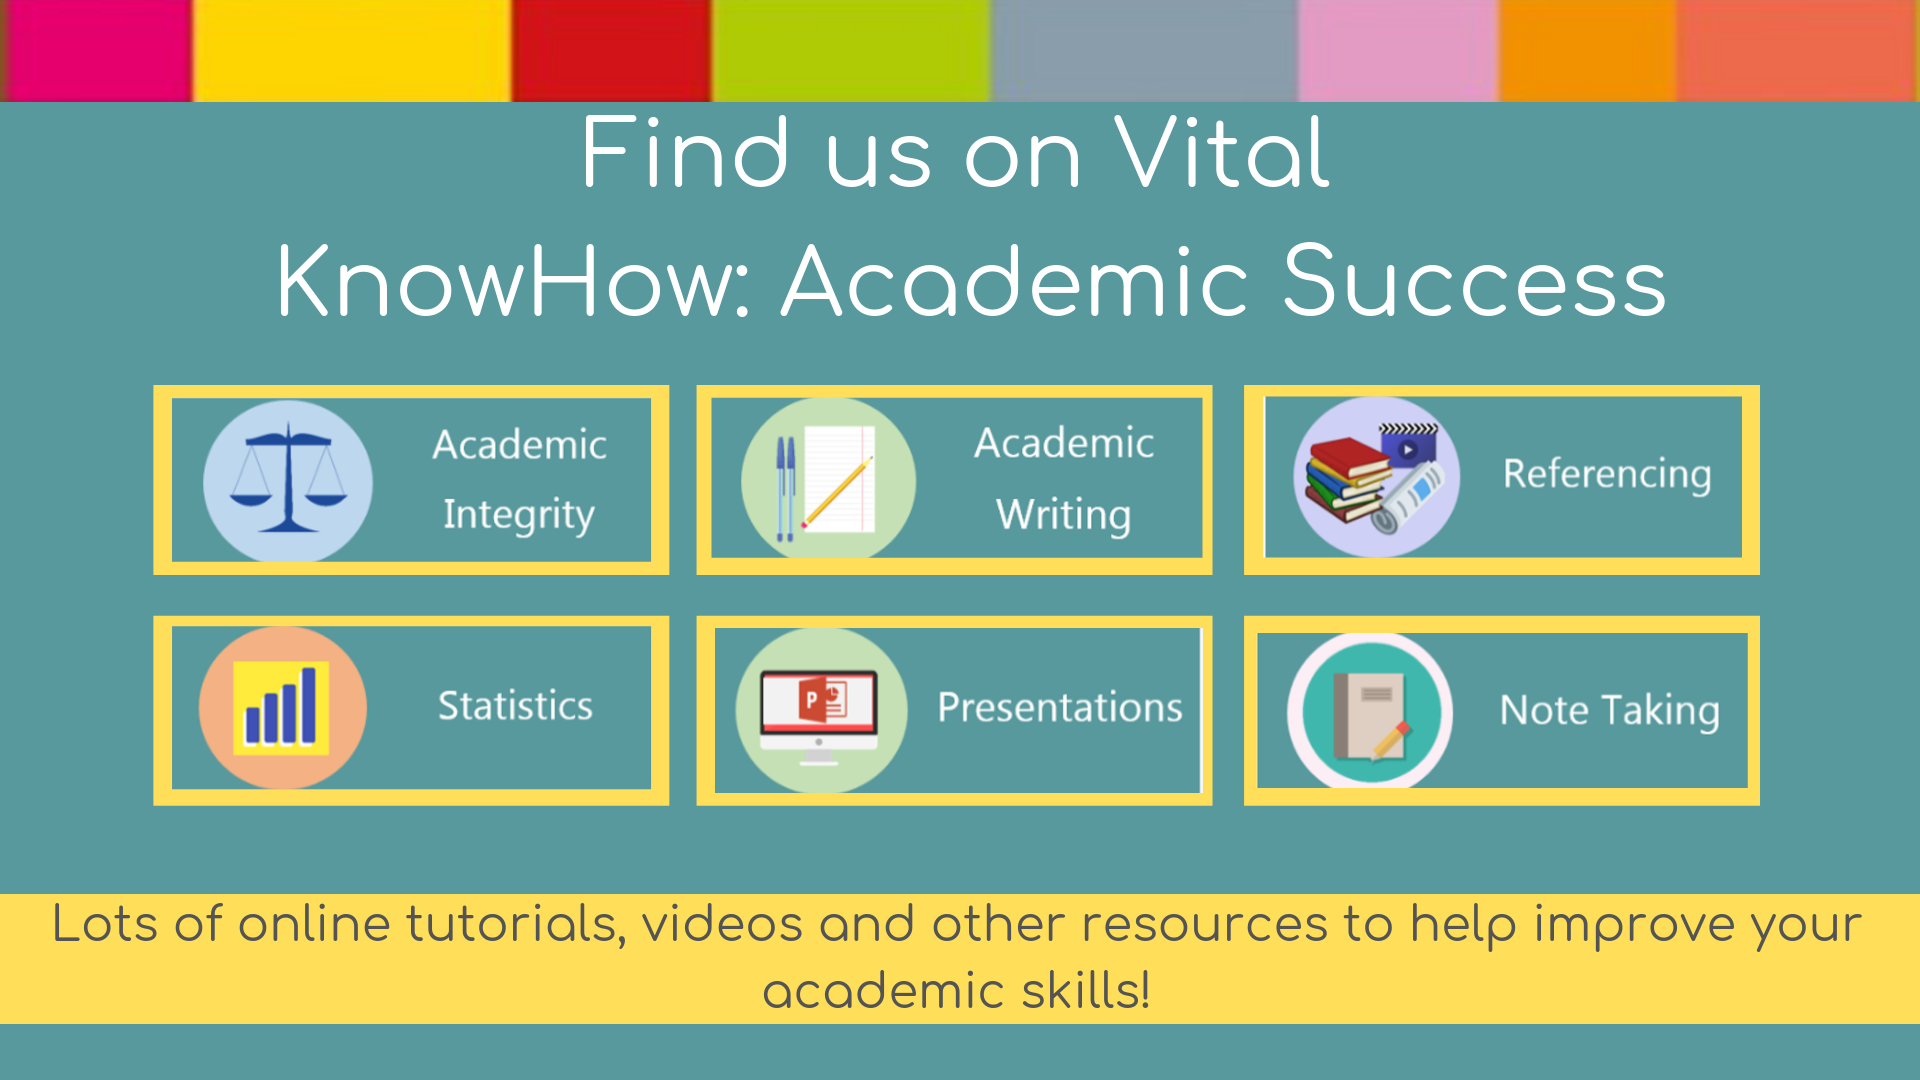 Find us on VITAL KnowHow: Academic Success. Lots of online tutorials, videos, and other resources to help improve your academic skills